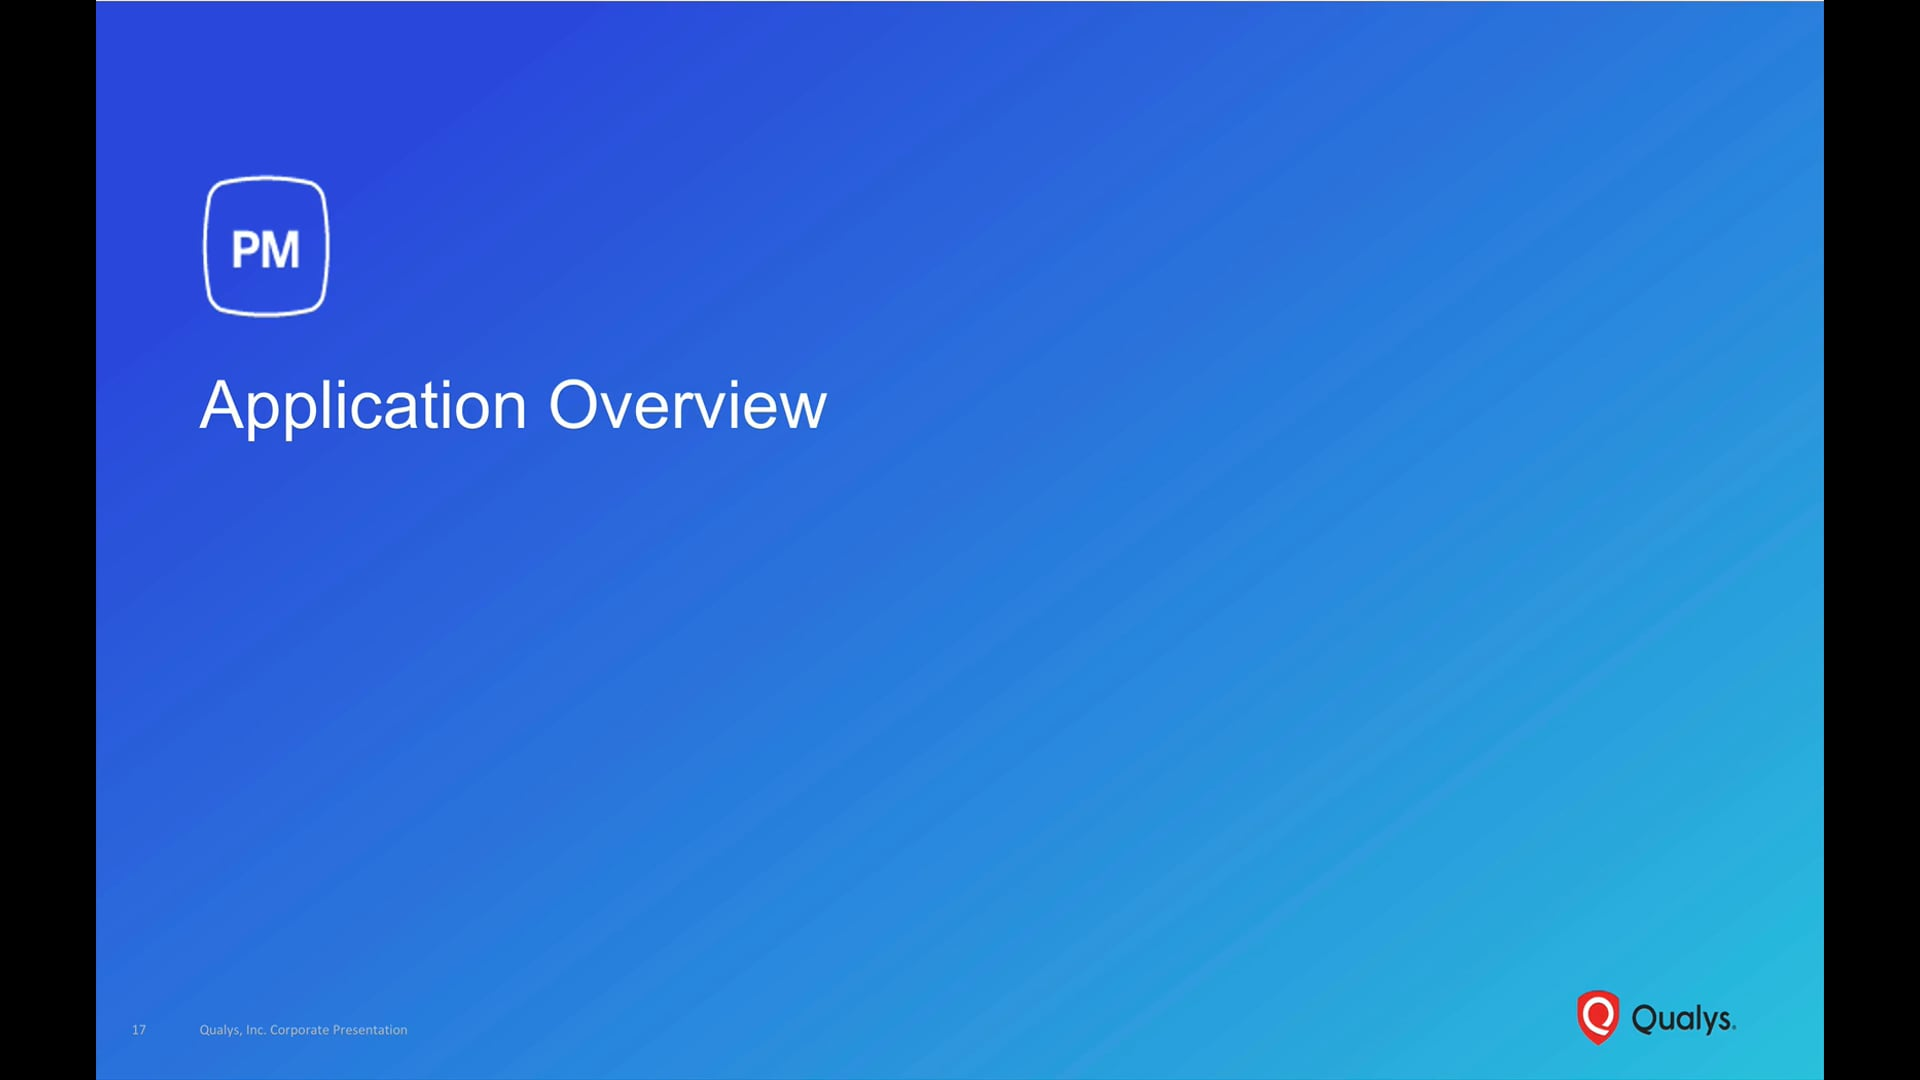 PM Application Overview